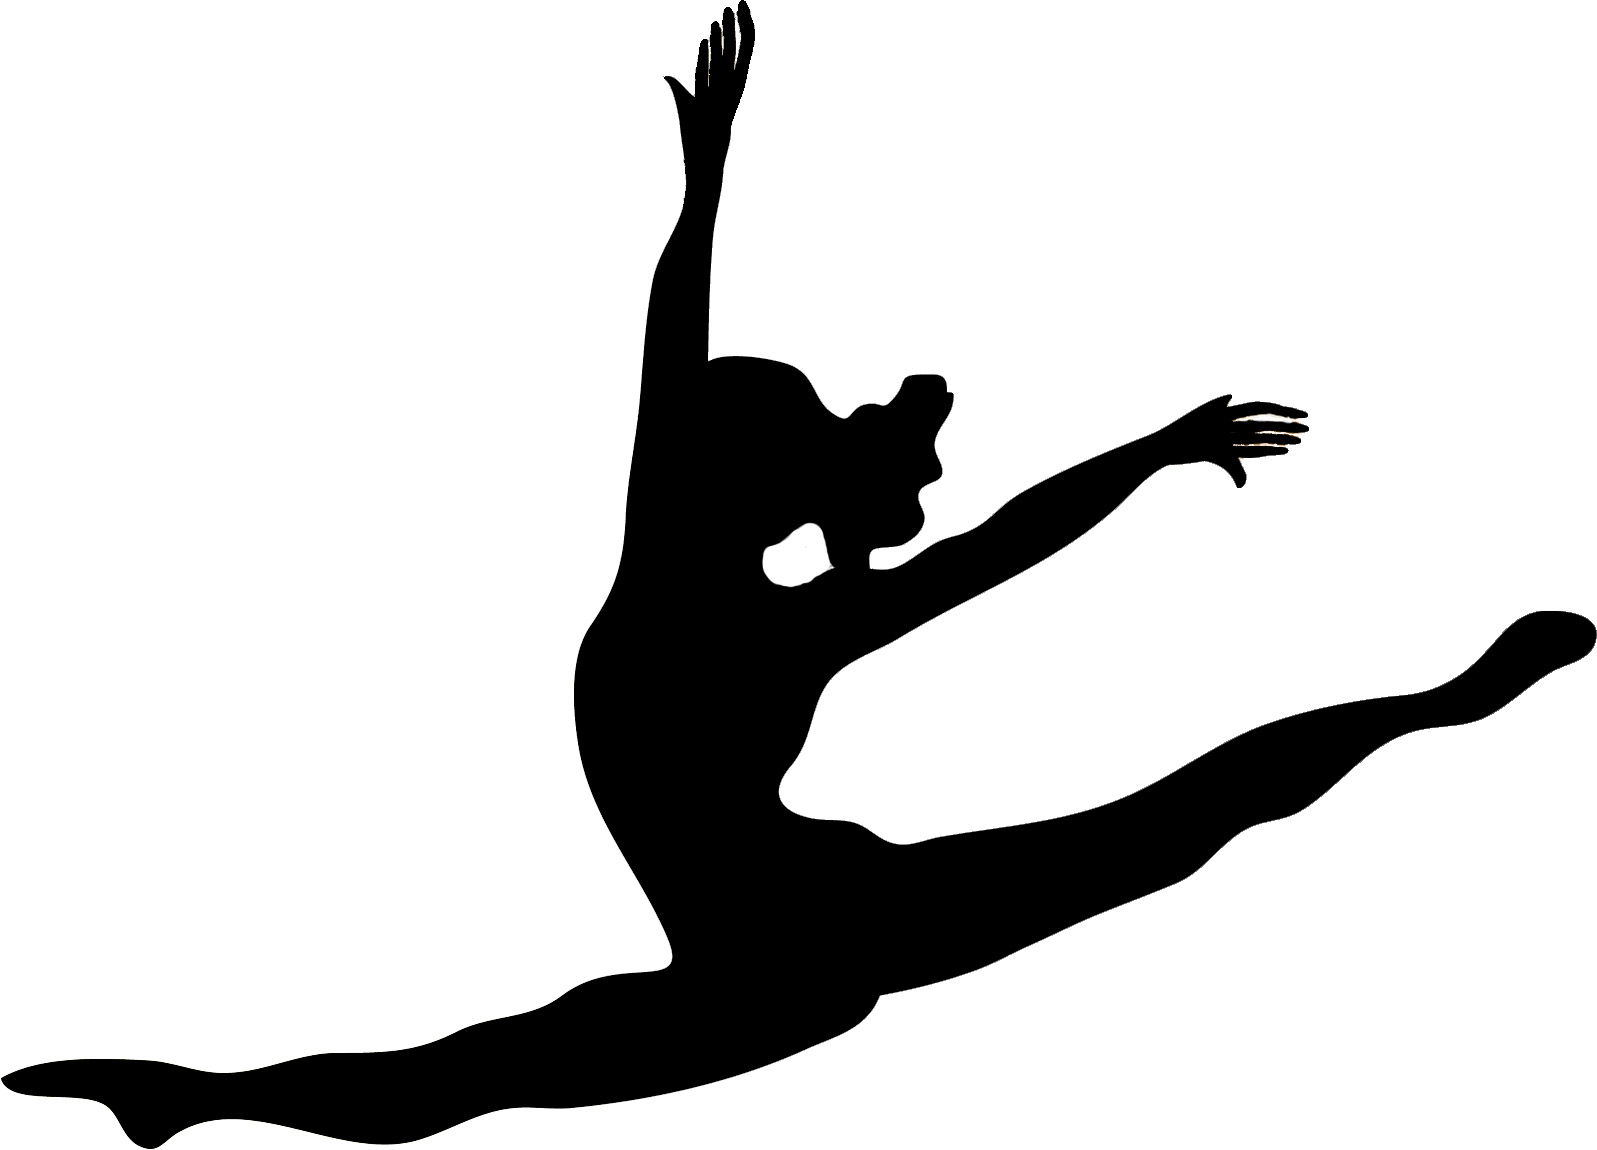 Clipart Toe Touch Displaying 20 Images For Cheerleading Clipart Toe